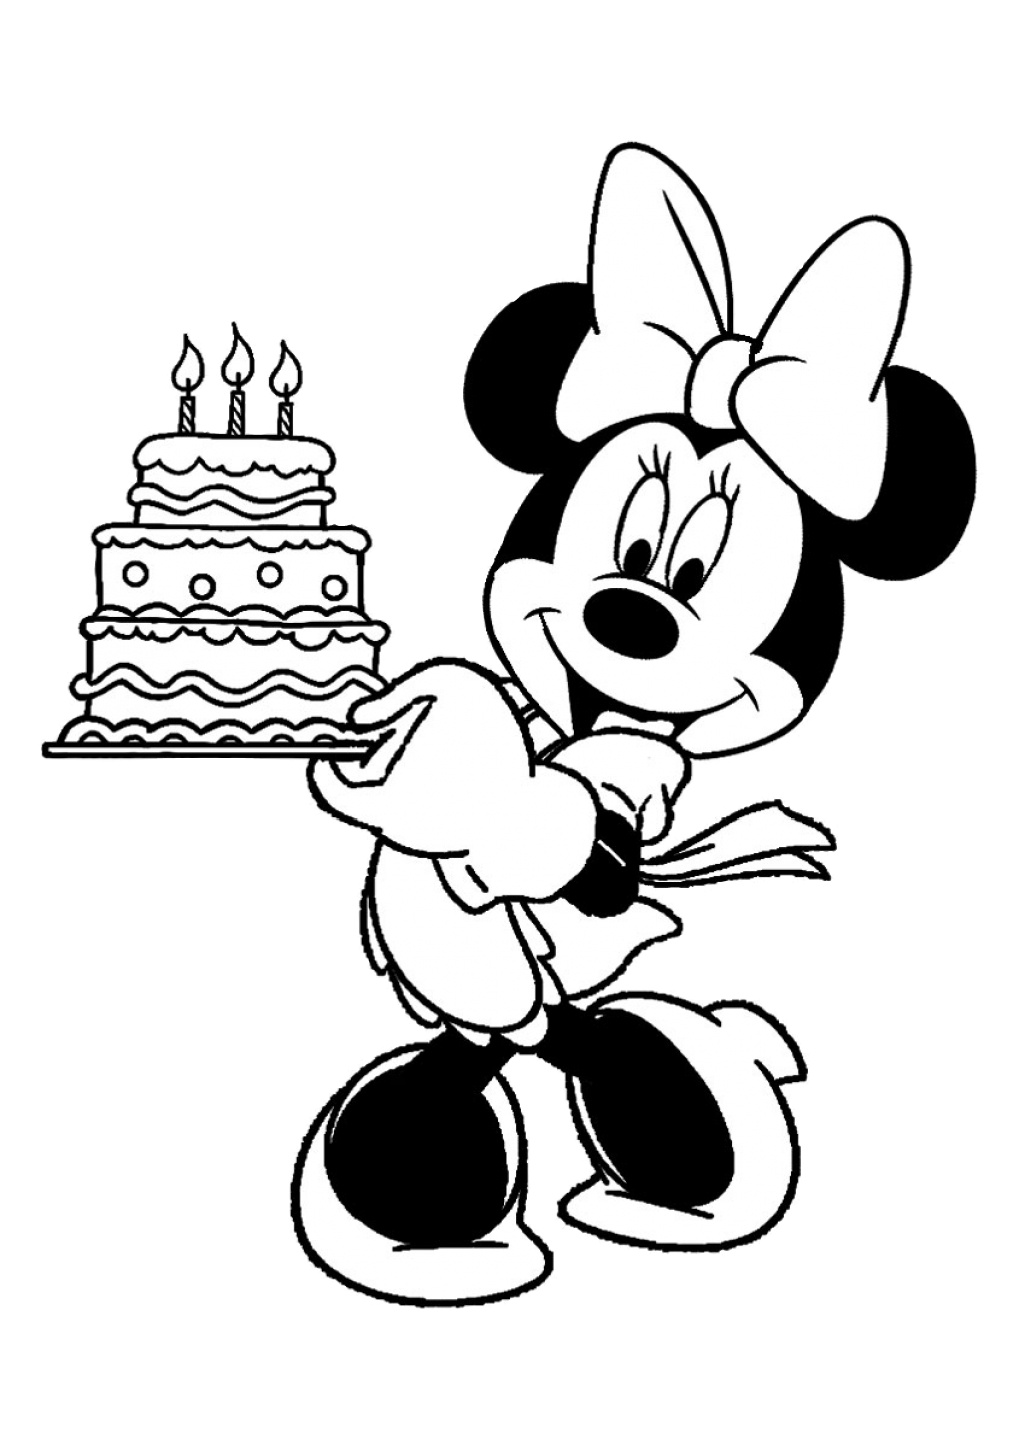 Printable Minnie Mouse Coloring Pages Minnie Mouse Holding a 3 Stack Birthday Cake